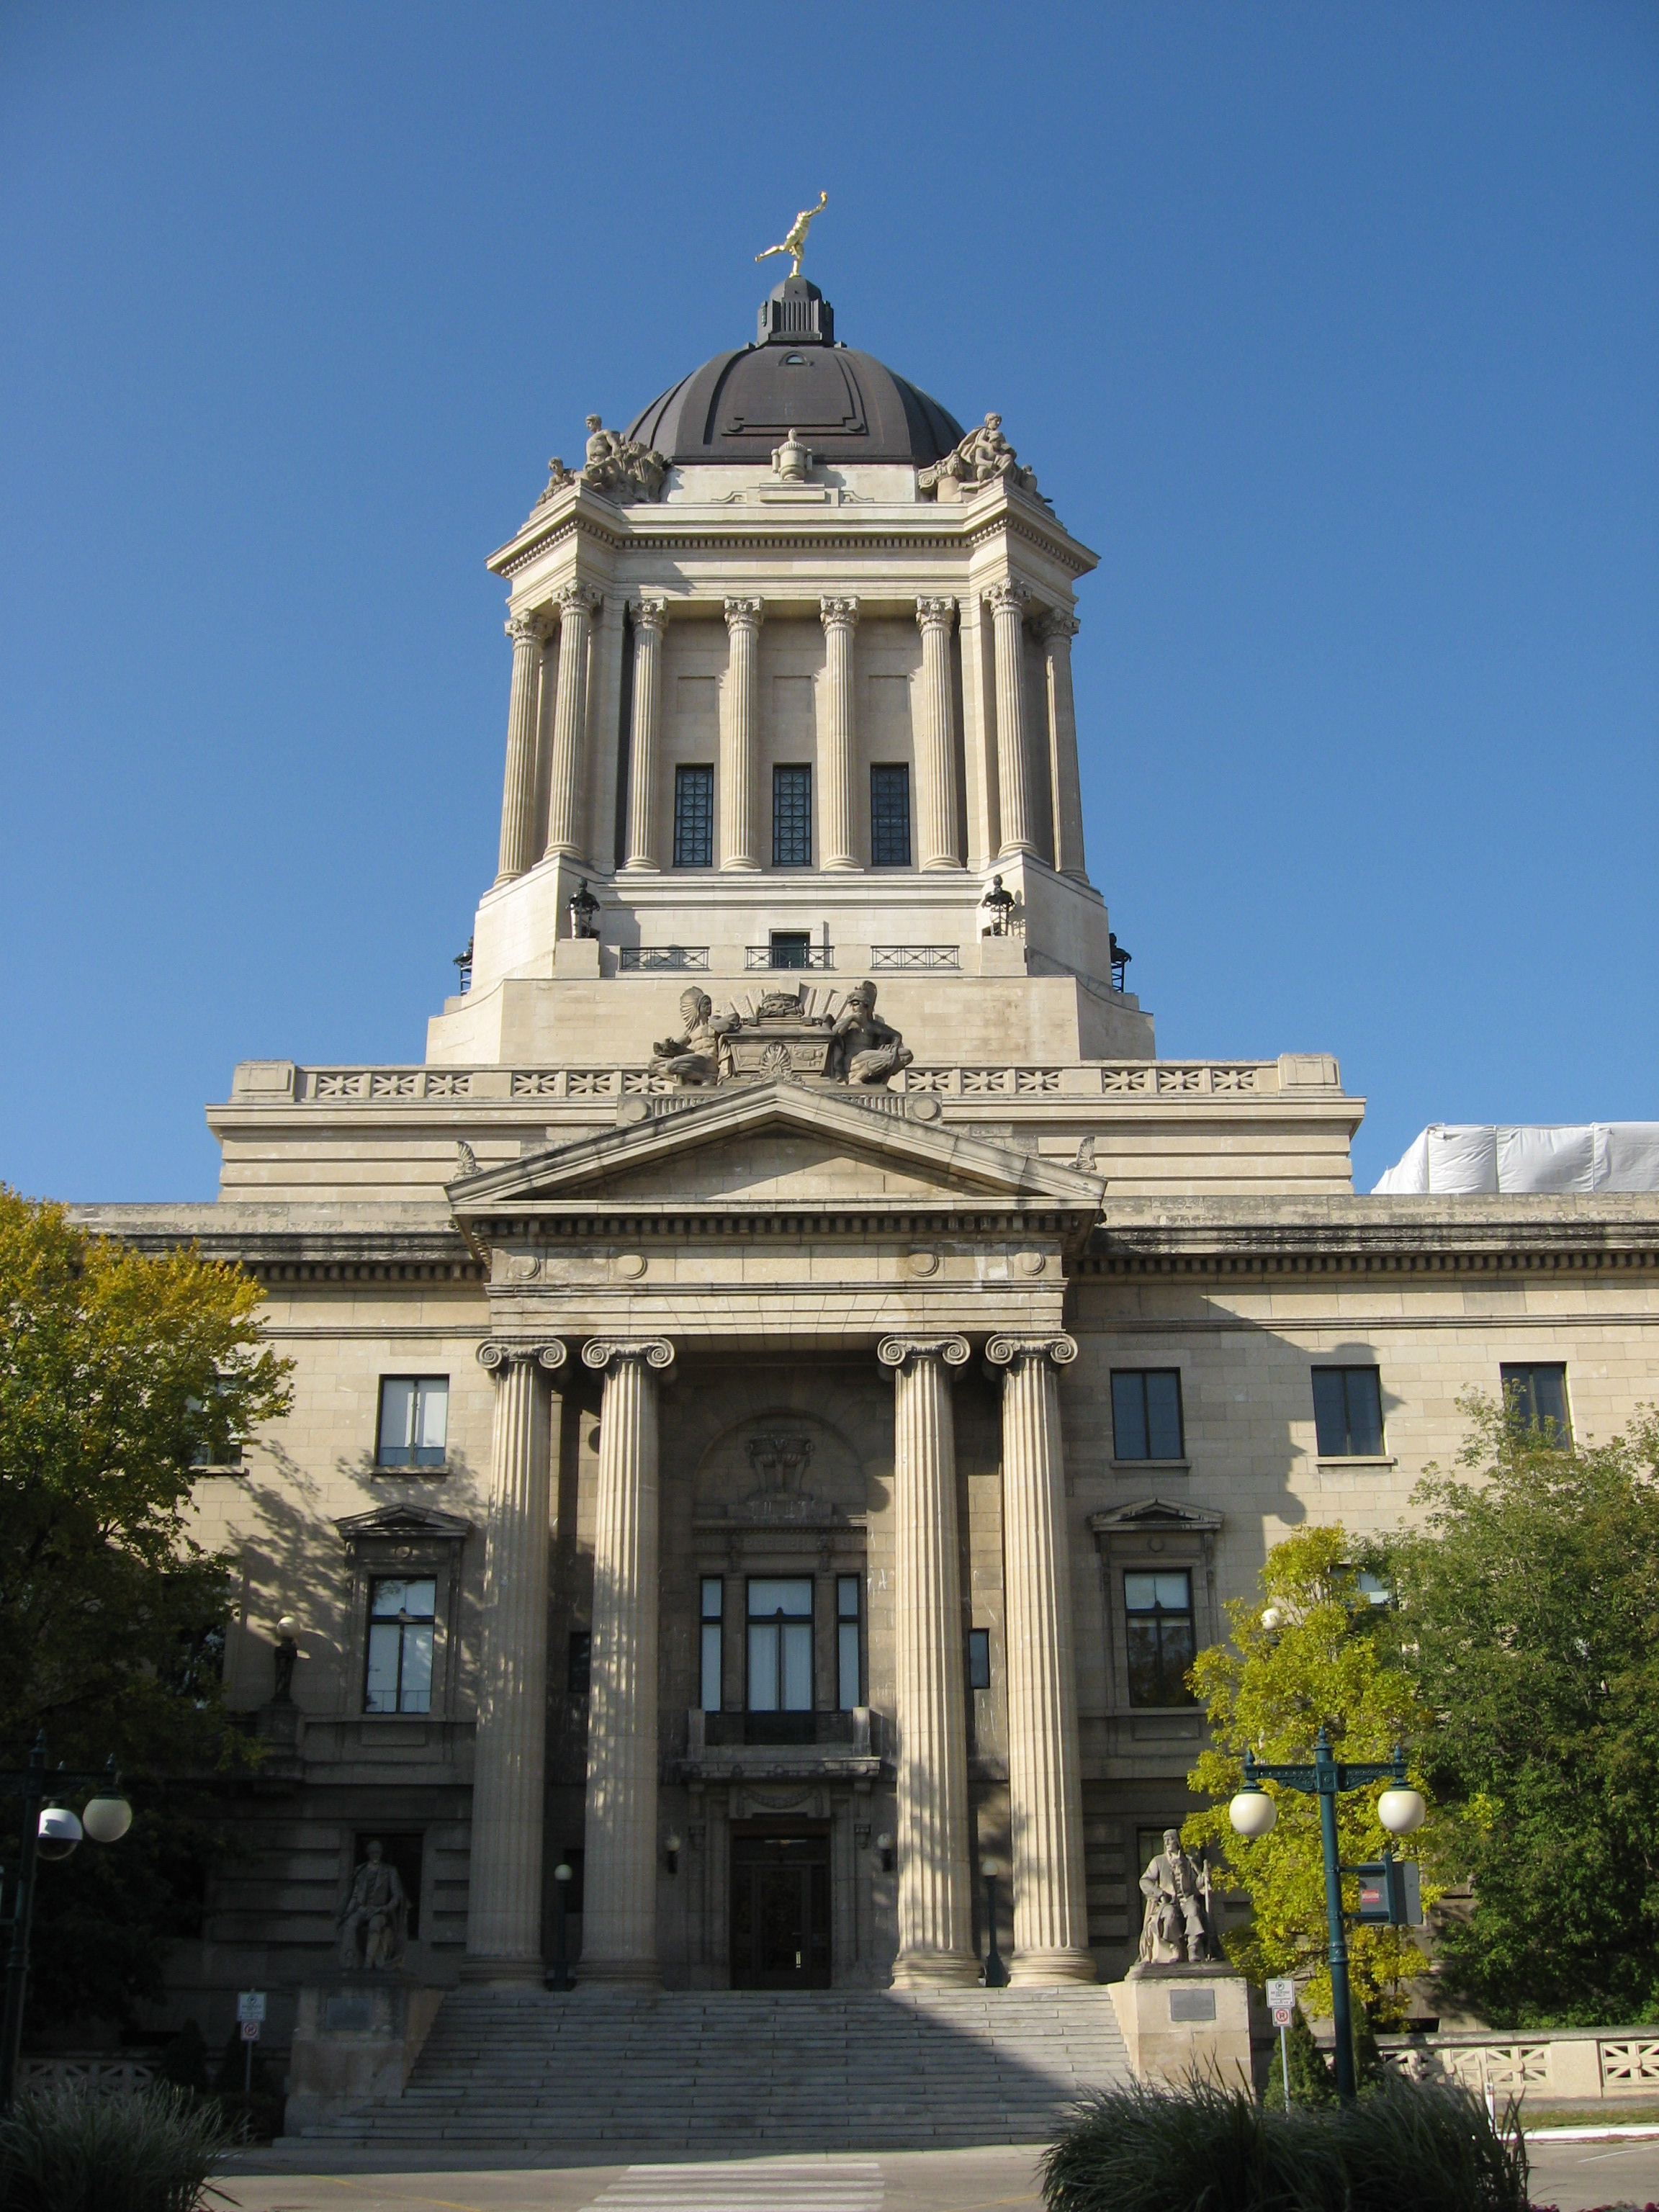 Winnipeg is home to a number of major historic buildings including the beaux arts architecture of the Manitoba Legislative Building.  In addition to being big, bold and beautiful, there is a mystery around some of the architectural elements like the sphinxes that has lead to a Hermetic Code theory.